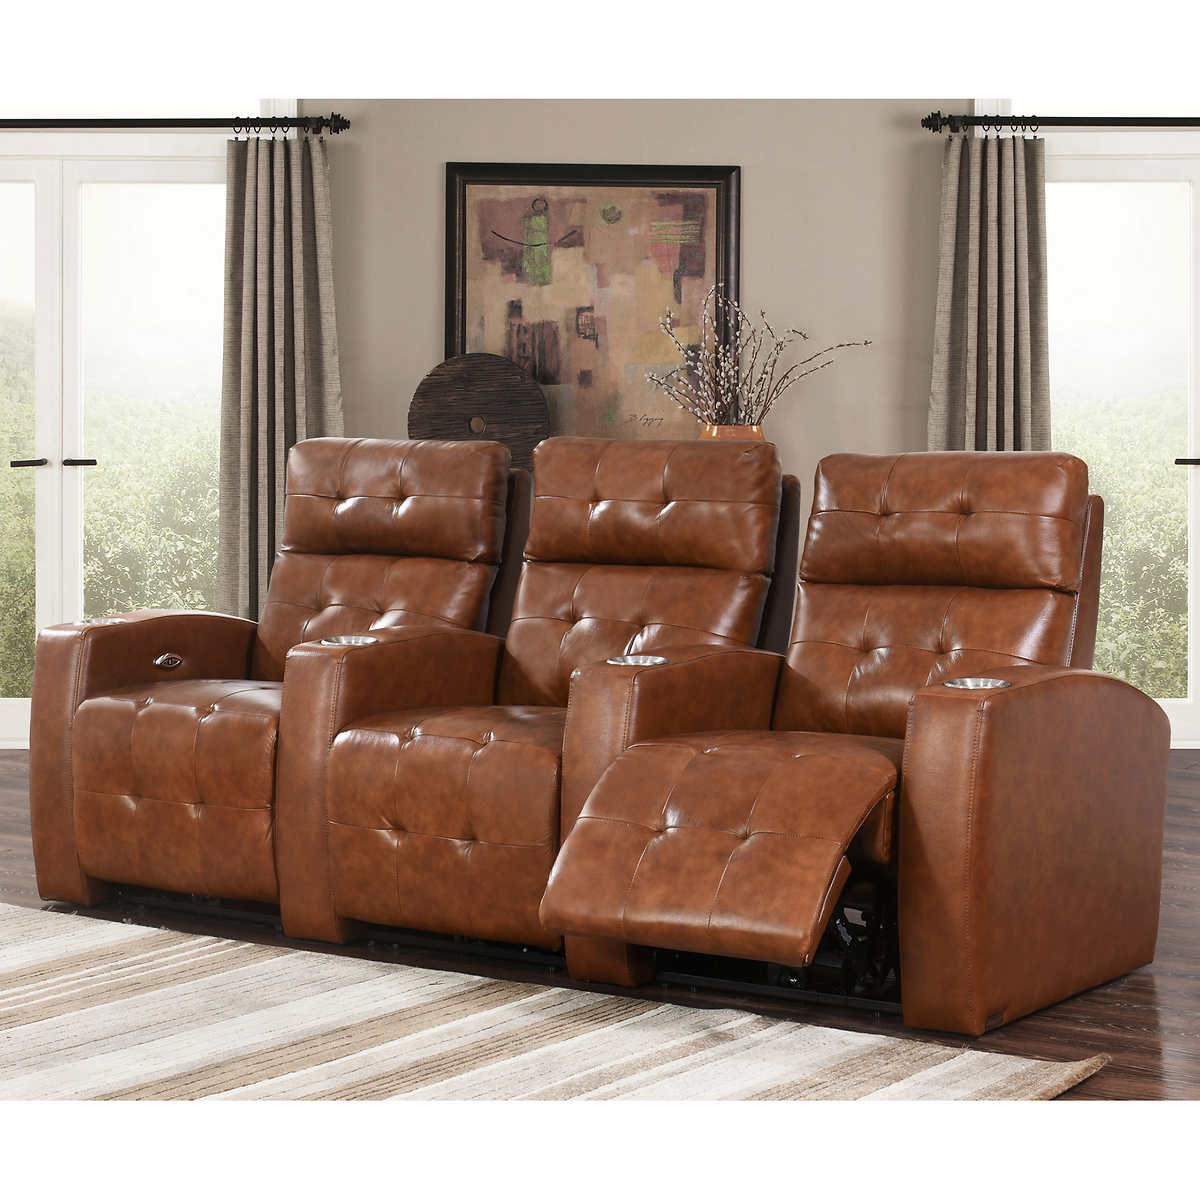 Leather Sofas amp Sectionals